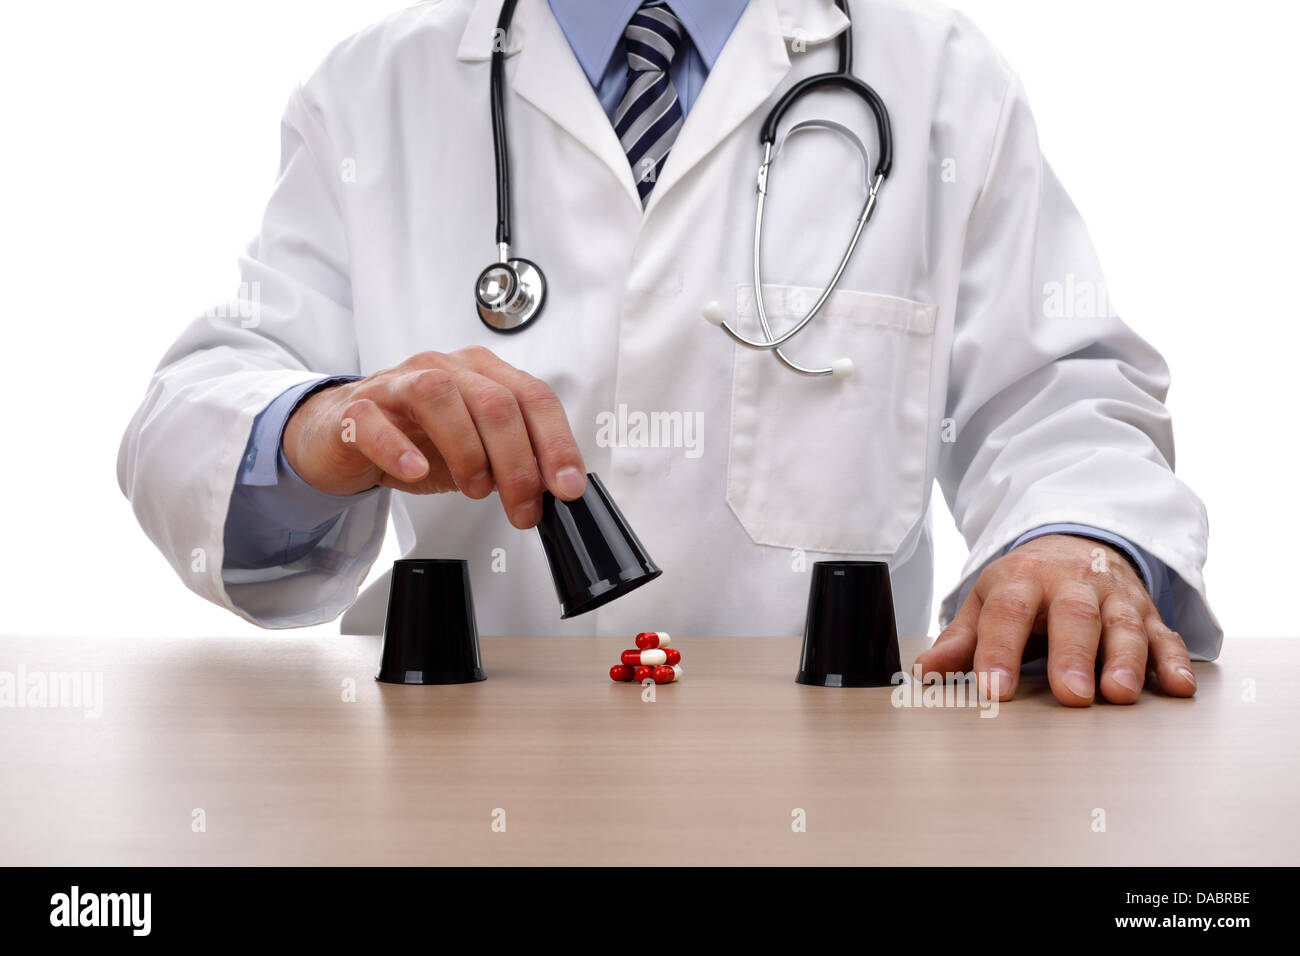 Gambling with health care - Stock Image